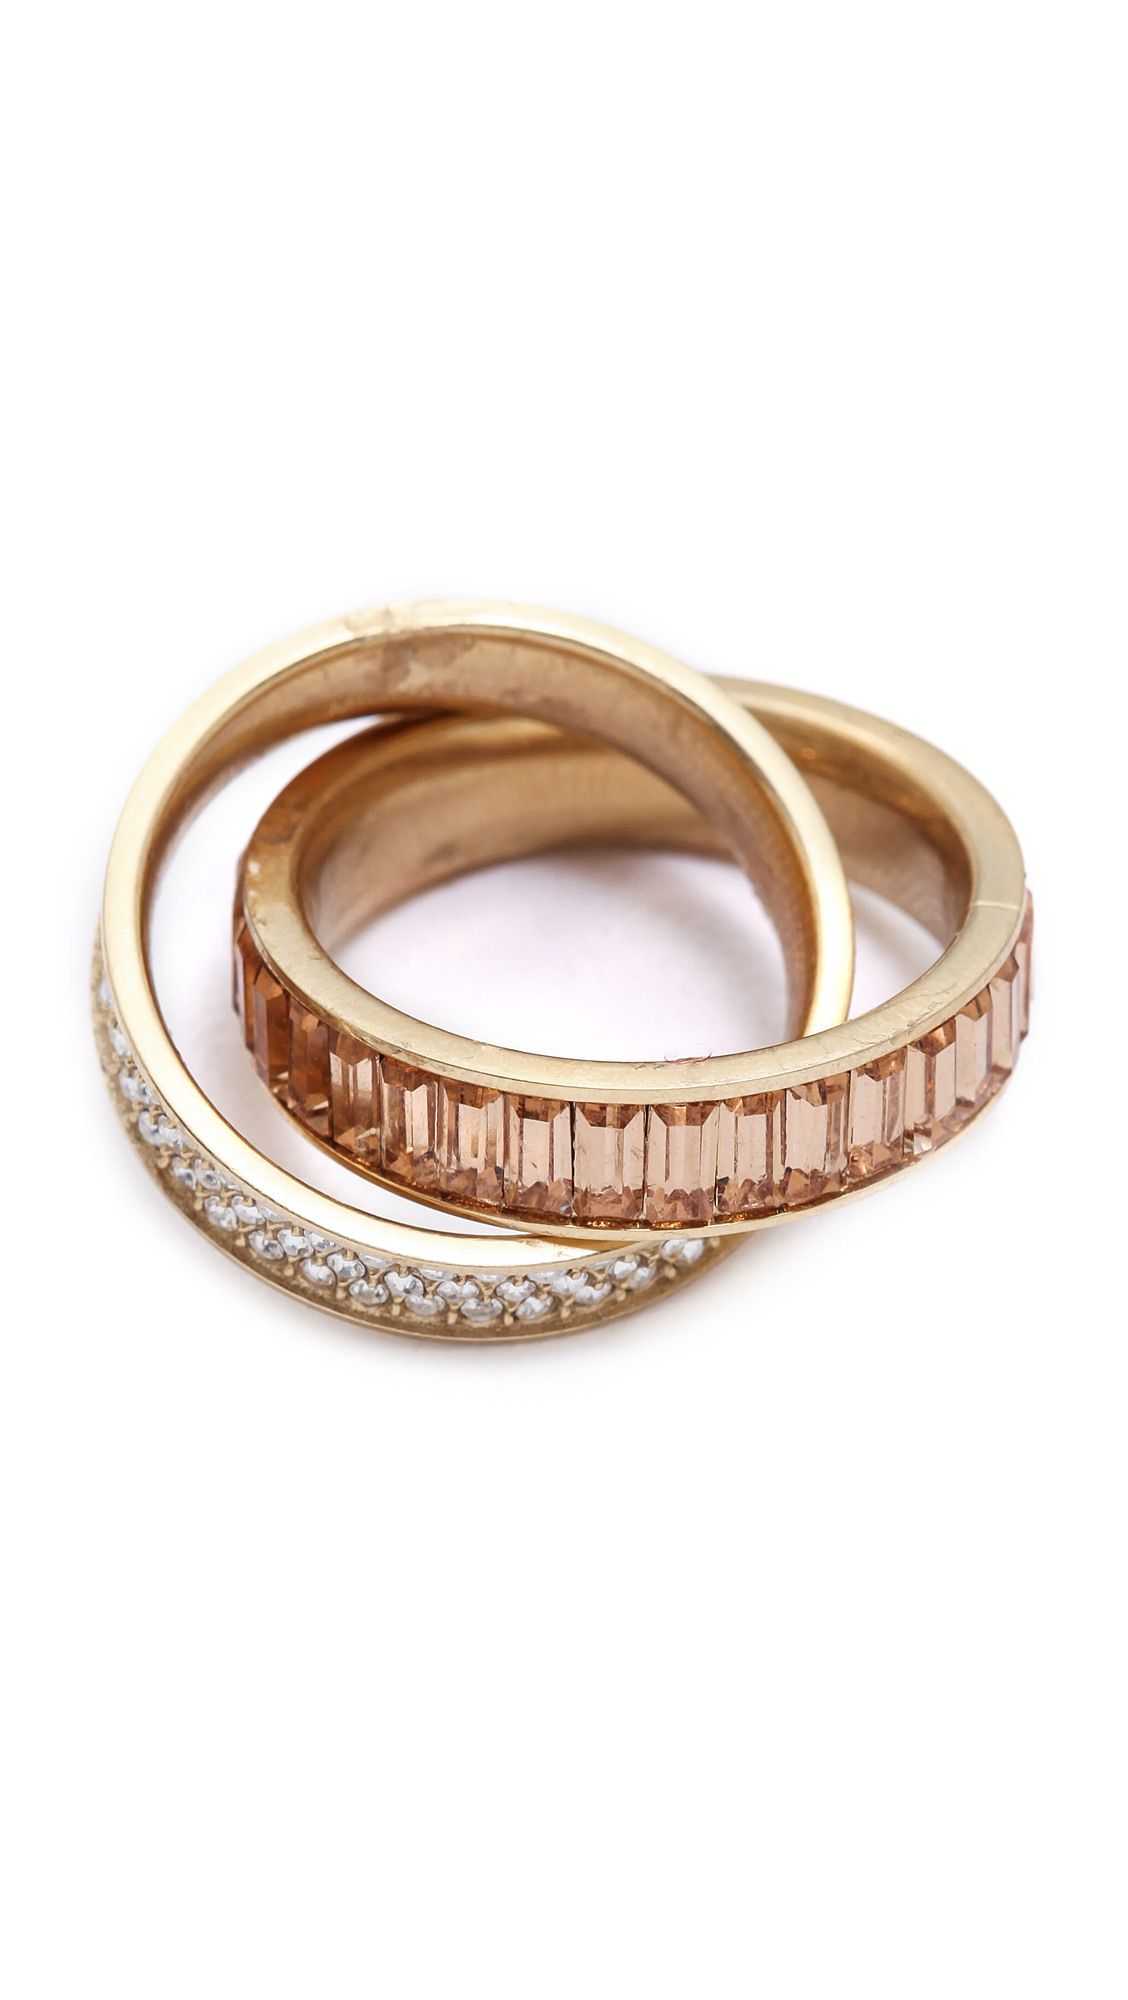 Michael kors Pave Baguette Crossover Ring Goldtopaz in Metallic